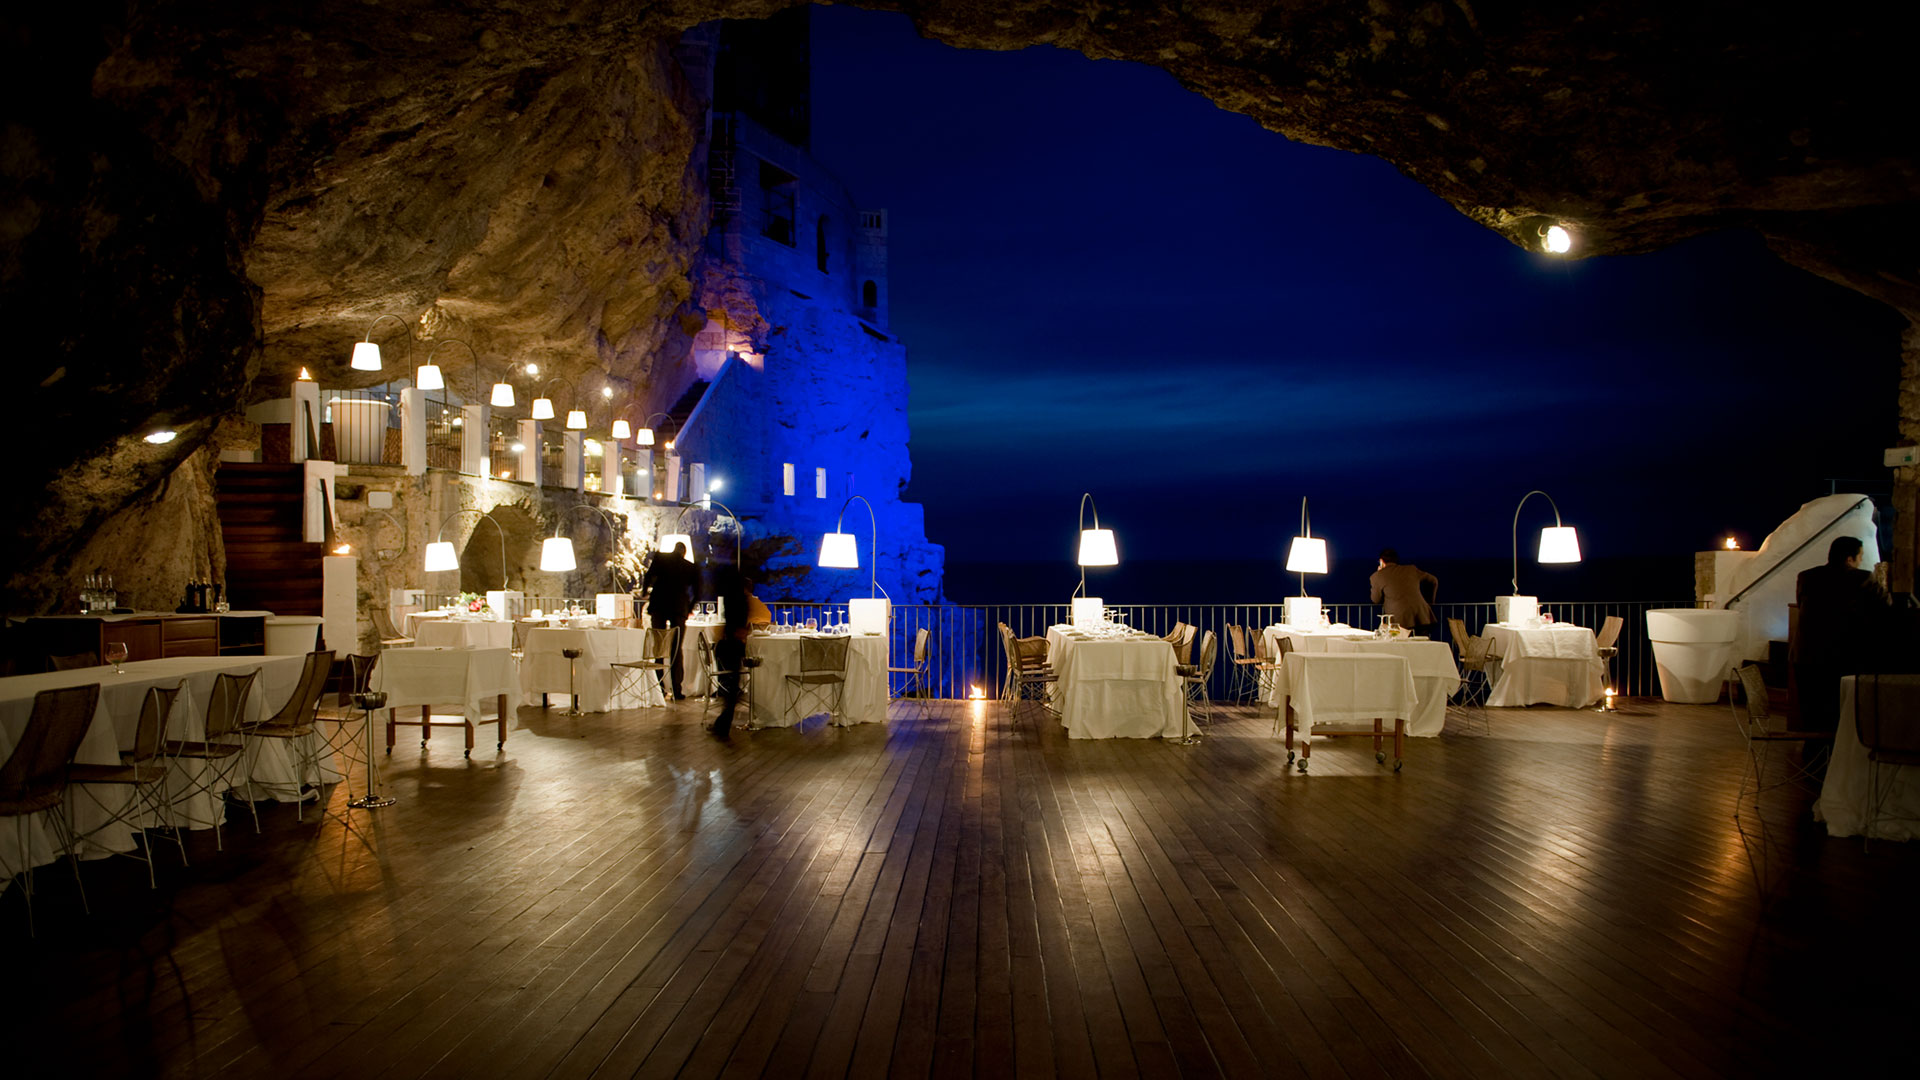 Night time view of Ristorante Grotta Palazzese restaurant